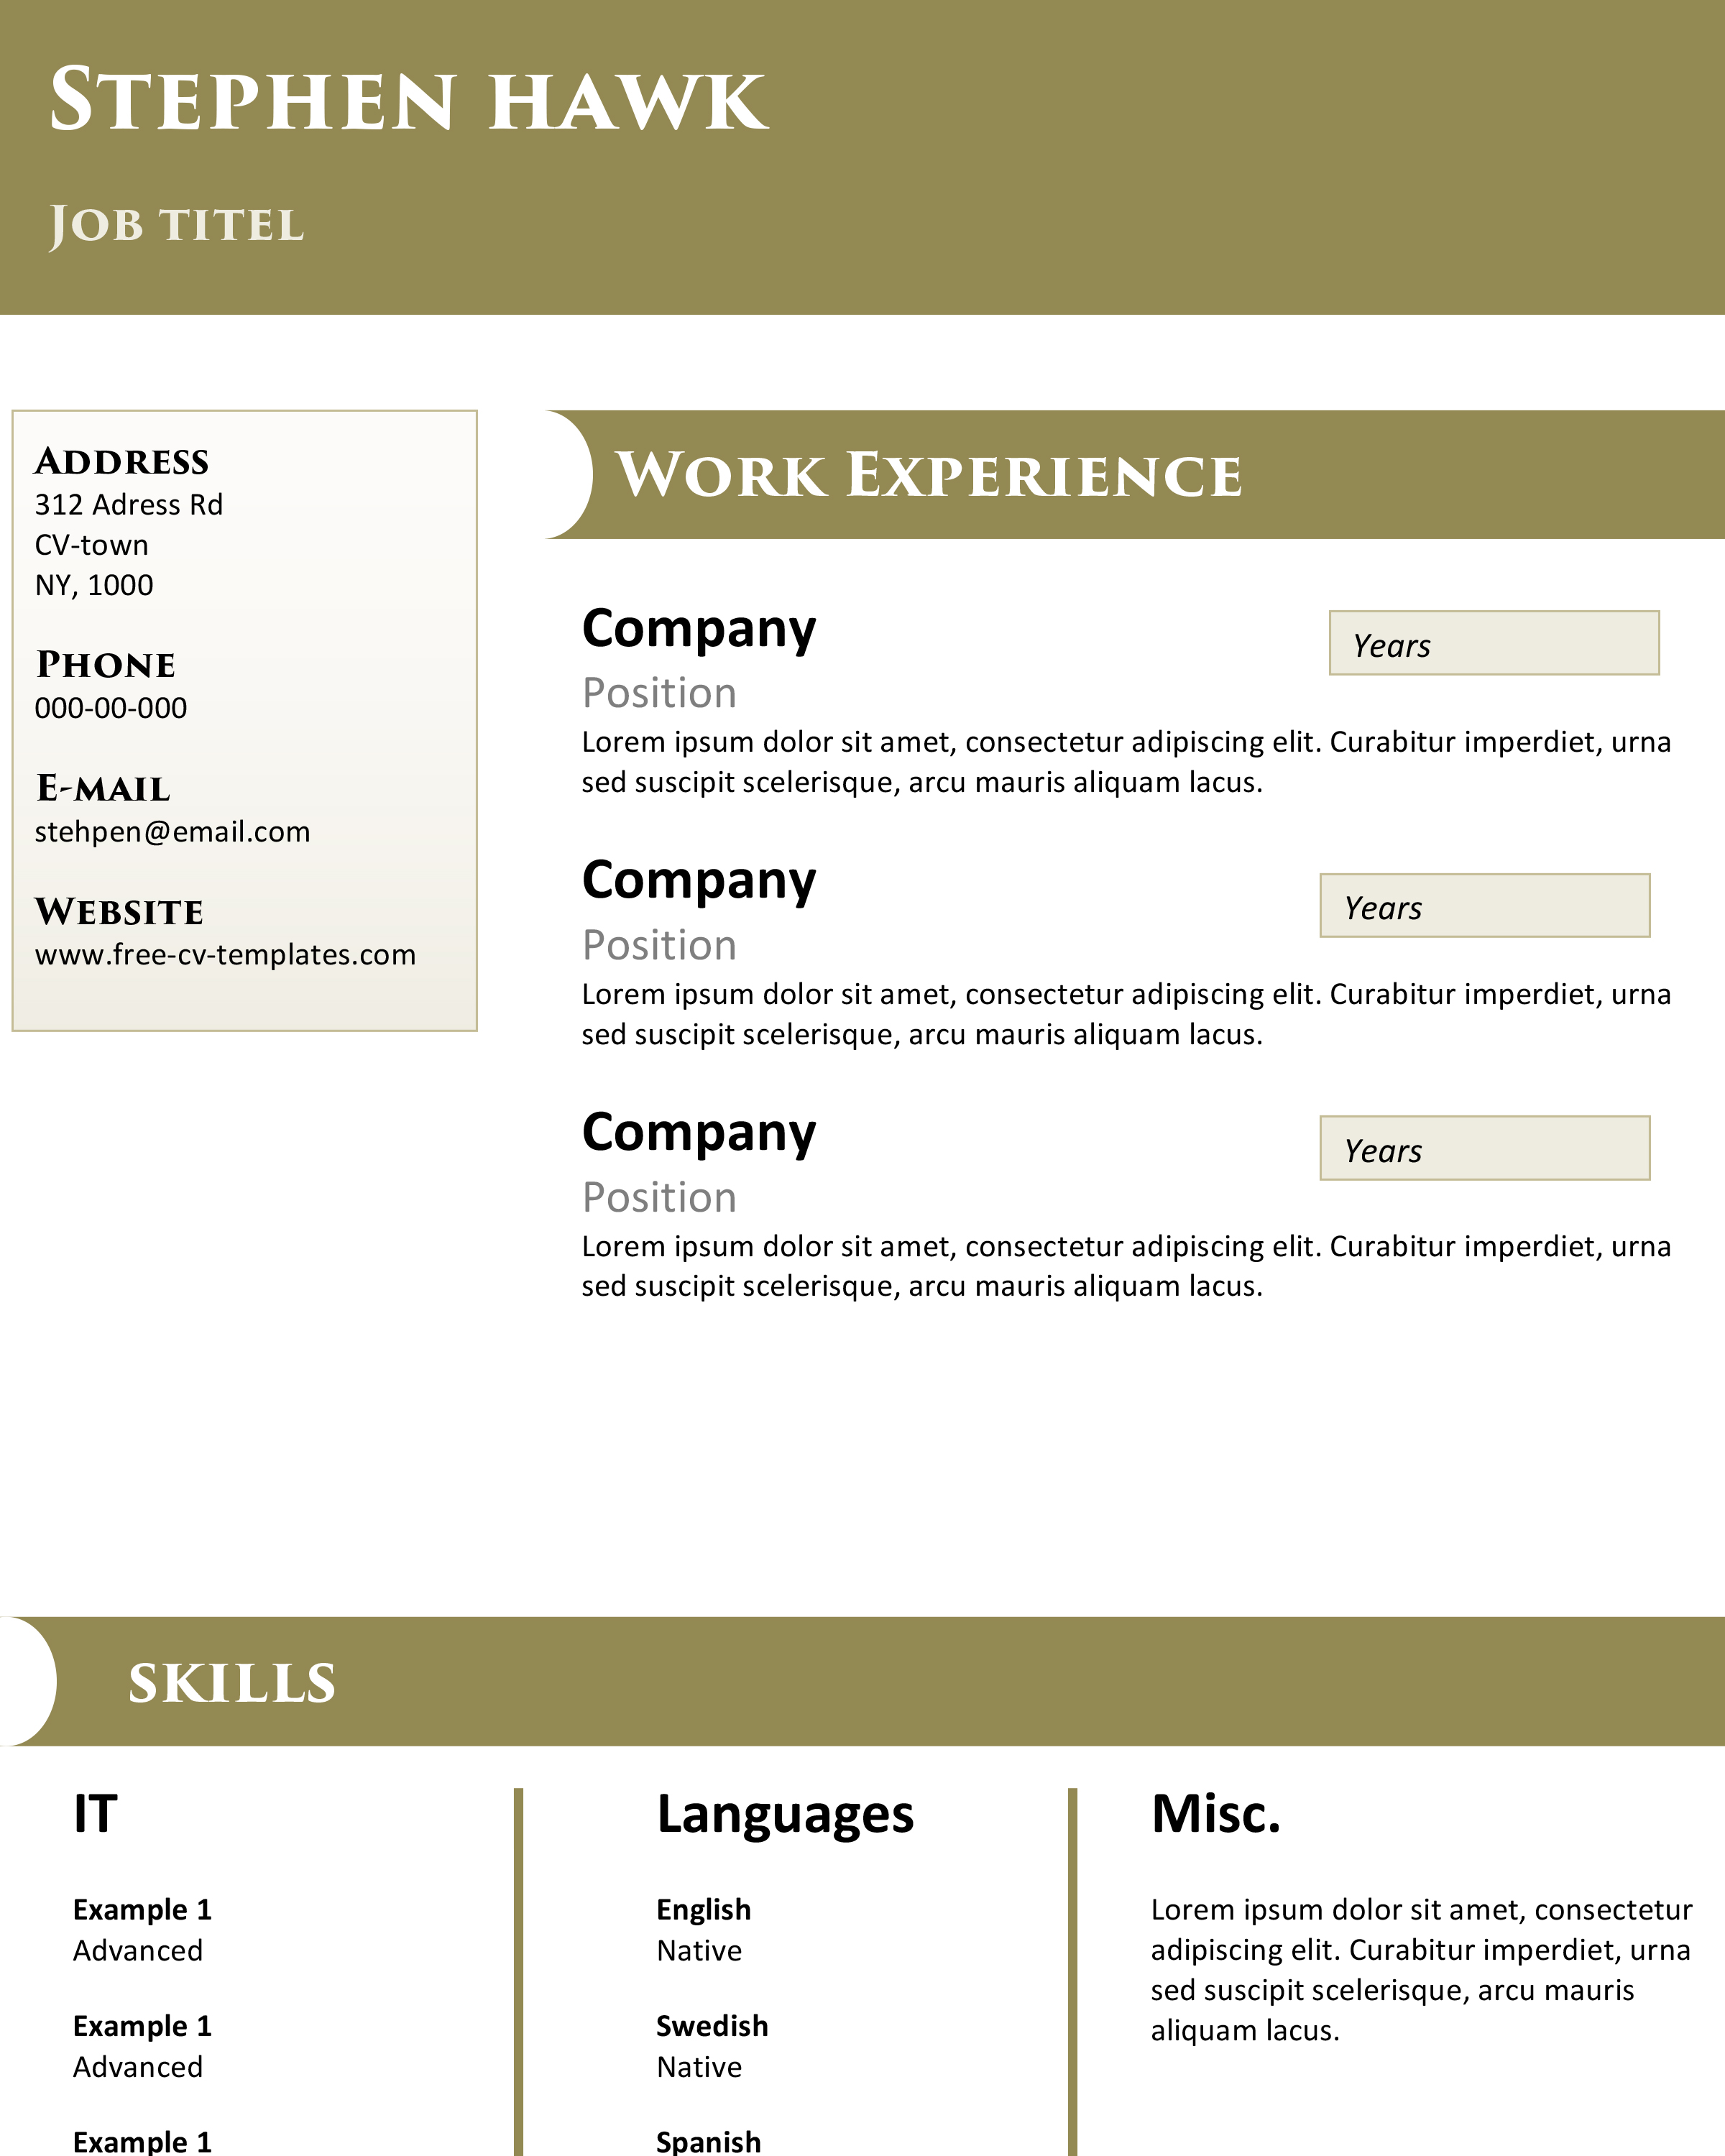 Top Cv Templates from free-cv-templates.com